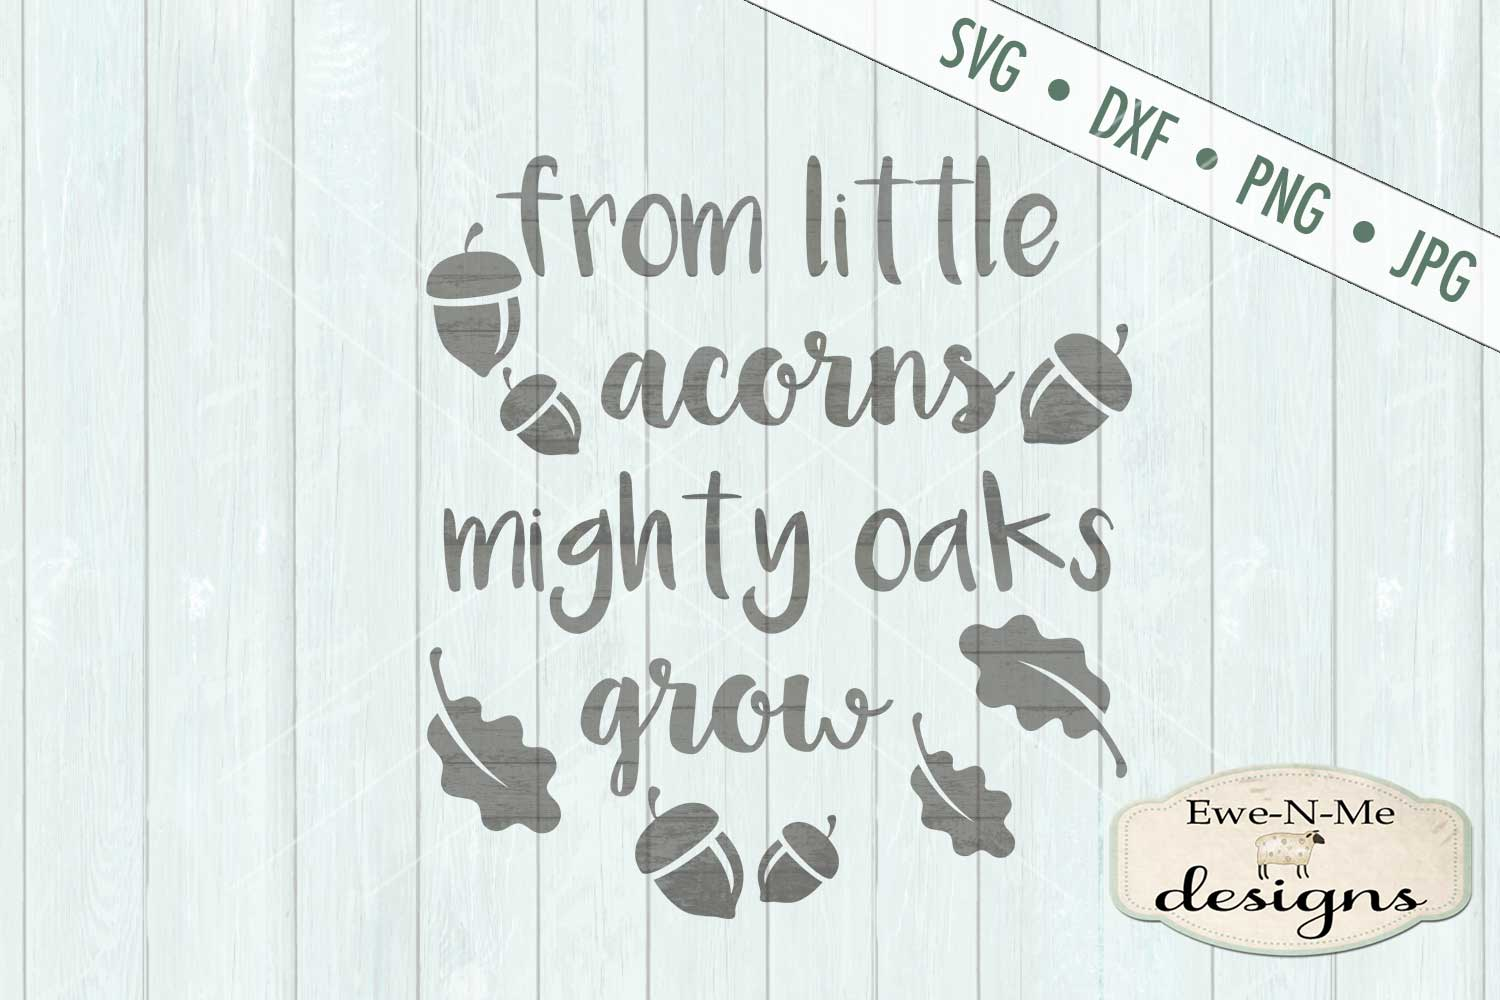 From Little Acorns Mighty Oaks Grow SVG DXF Files example image 2